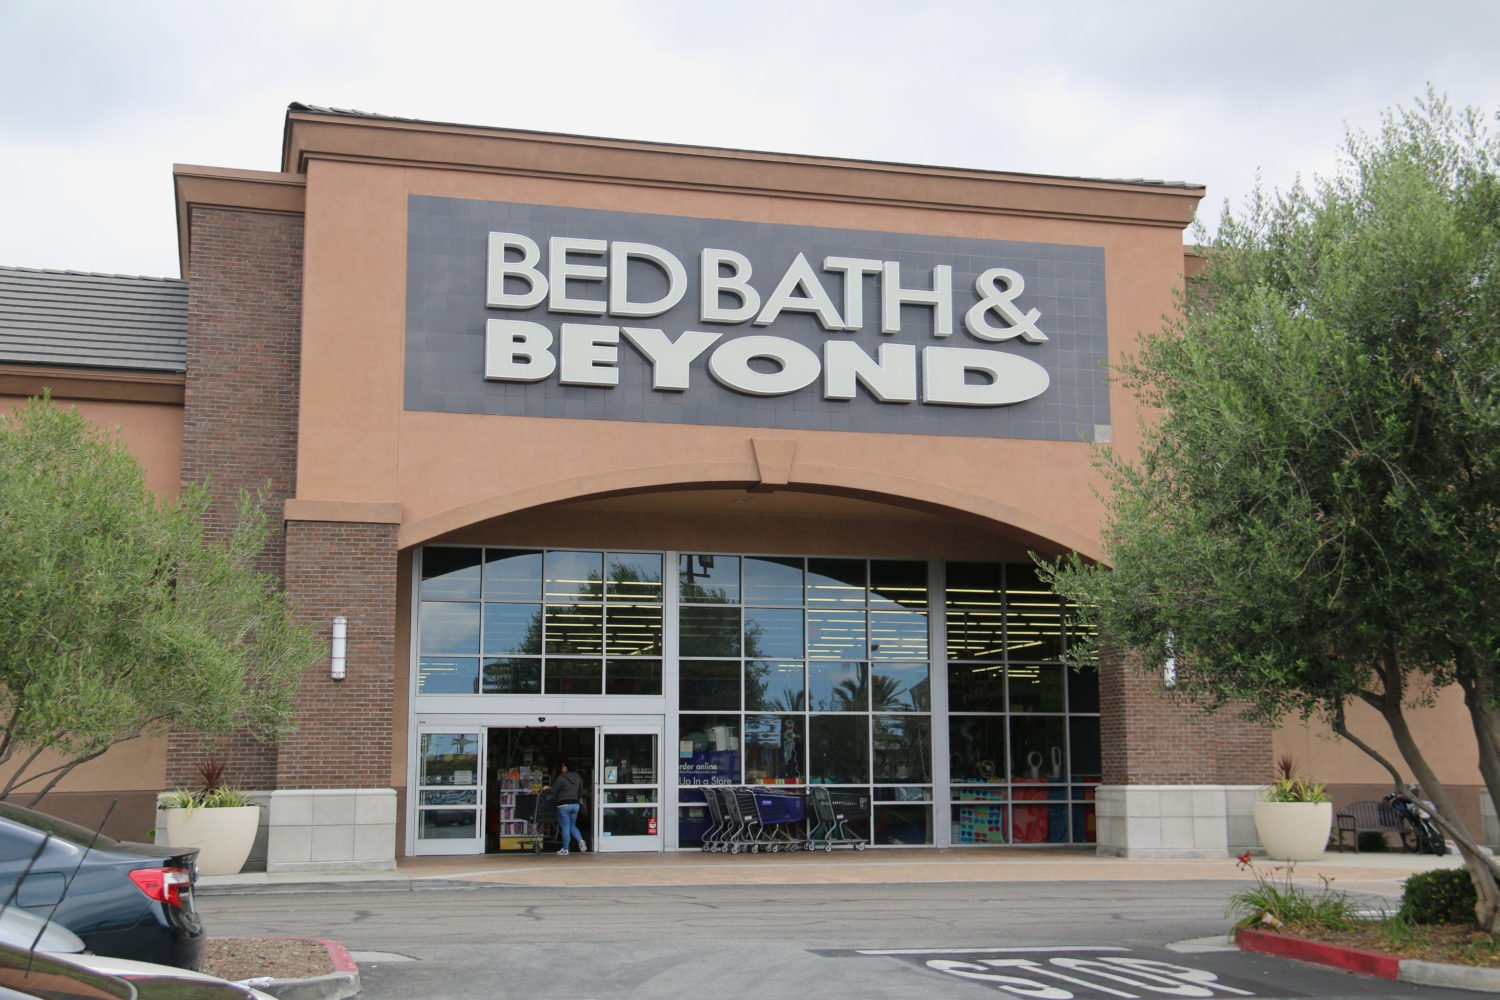 Bed Bath & Beyond said it earned $ million, or 36 cents a share, in the quarter, compared with $ million, or 67 cents a share, in the year-ago period. Revenue was flat at $ billion.